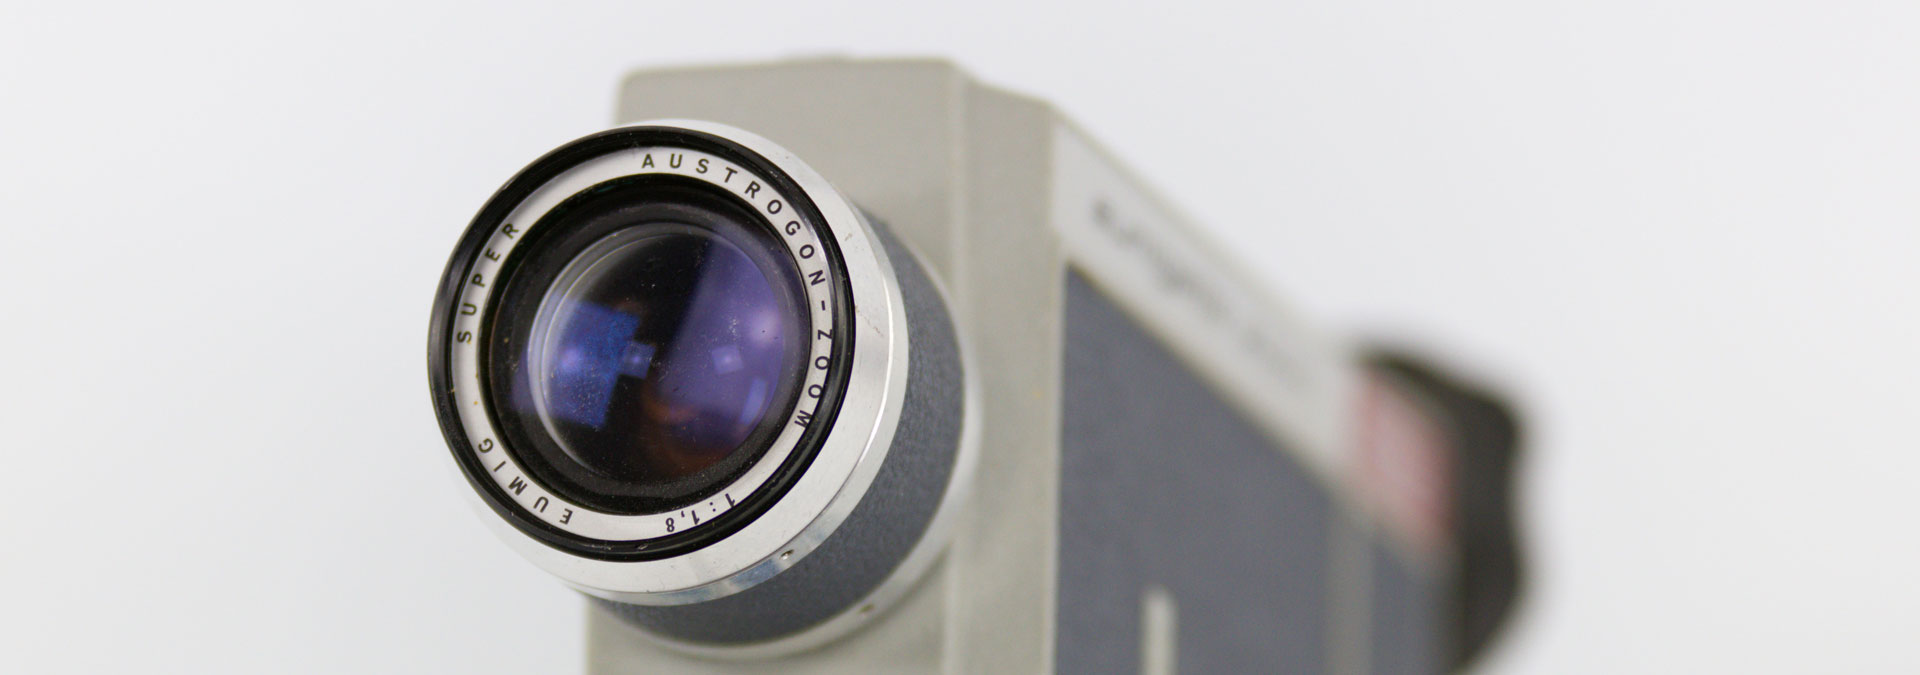 Old analogue video camera showing lens